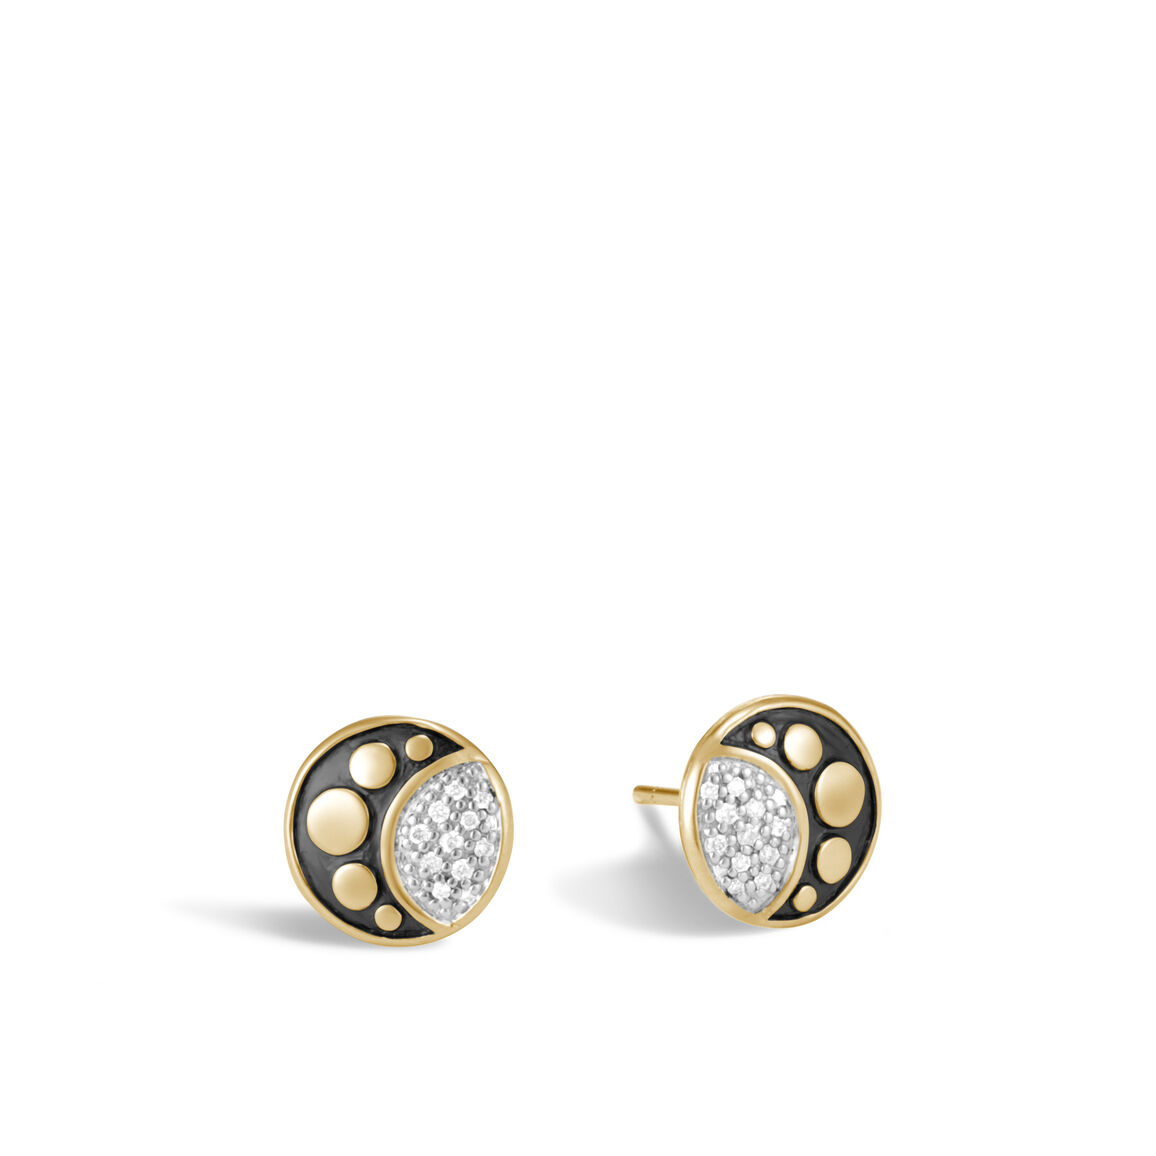 Dot Moon Phase Stud Earring in 18K Gold with Diamonds